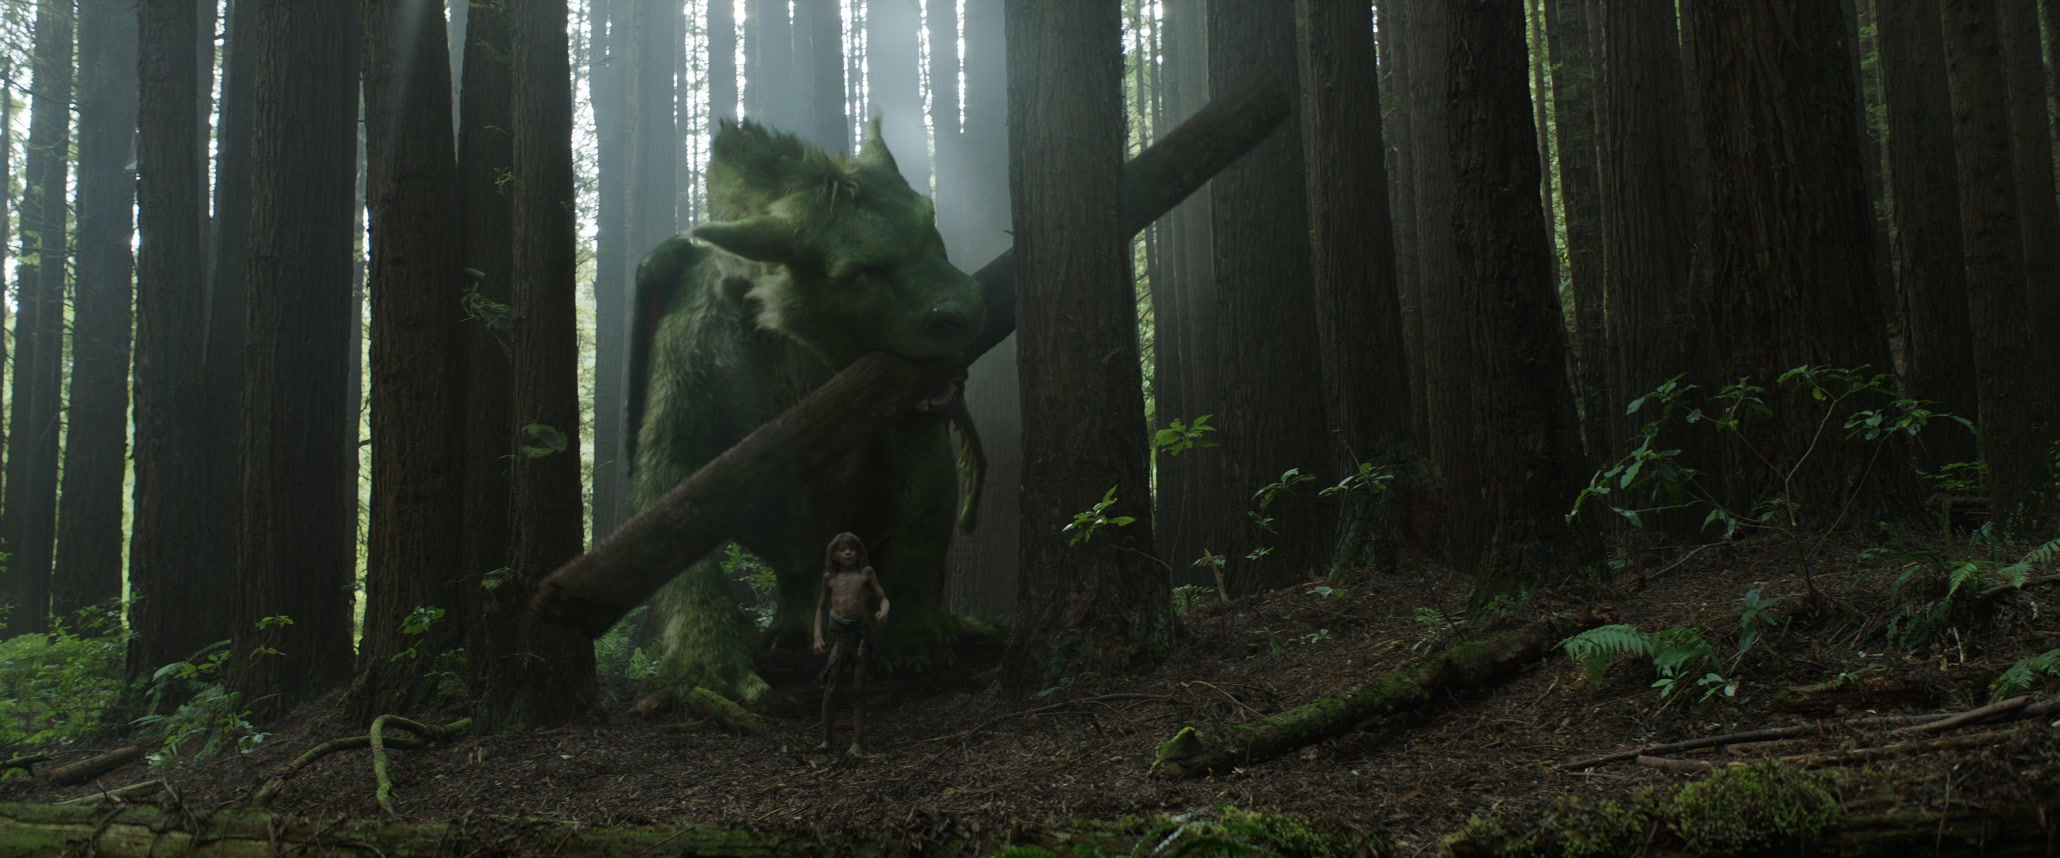 A re-imagining of Disney's cherished film, PETE'S DRAGON is the story of a boy named Pete (Oakes Fegley) and his best friend Elliot, who just happens to be a dragon.